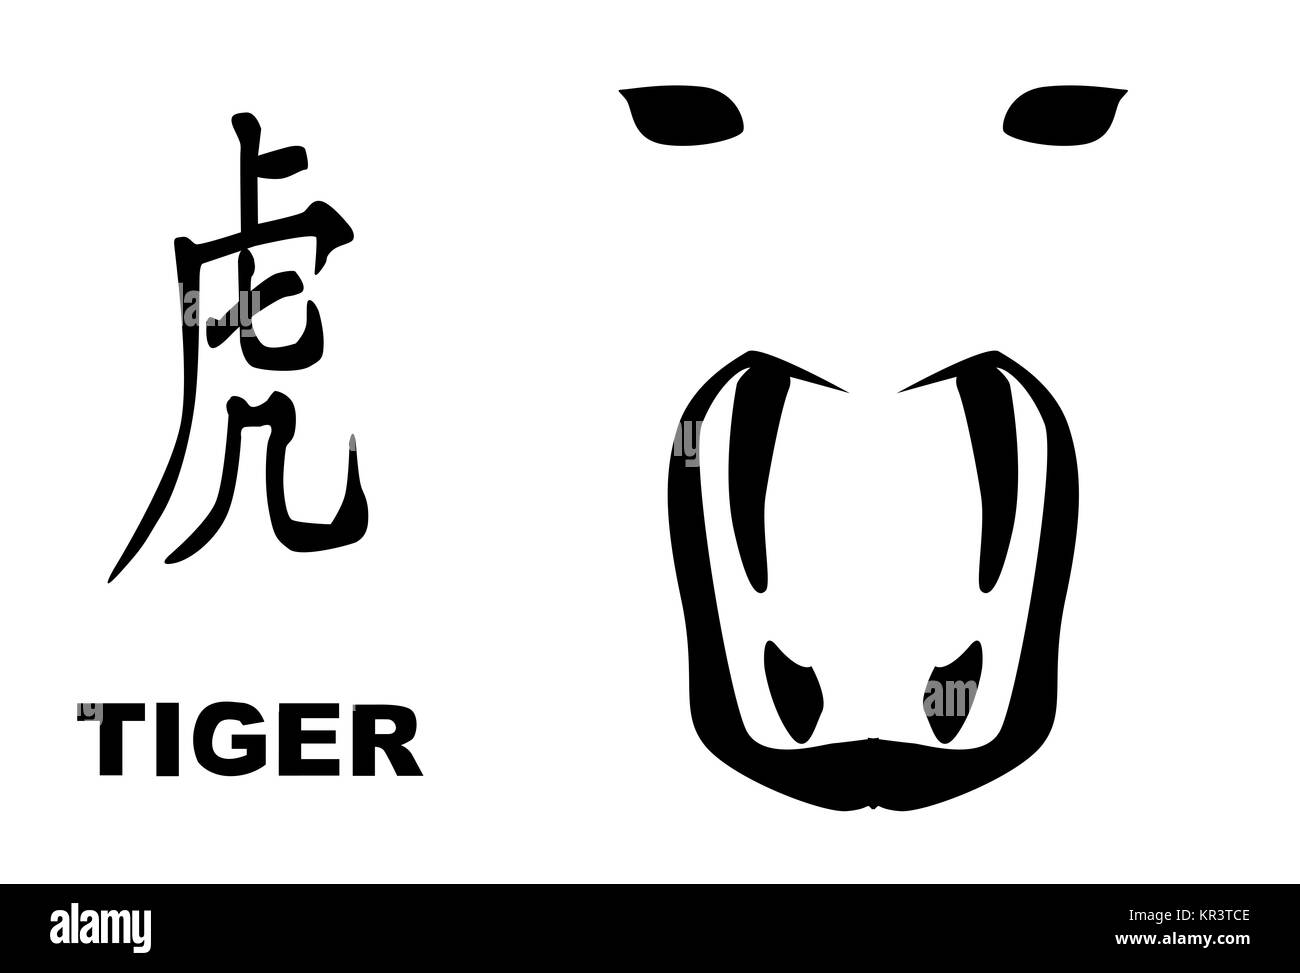 Chinese Year Of The Tiger - Stock Image